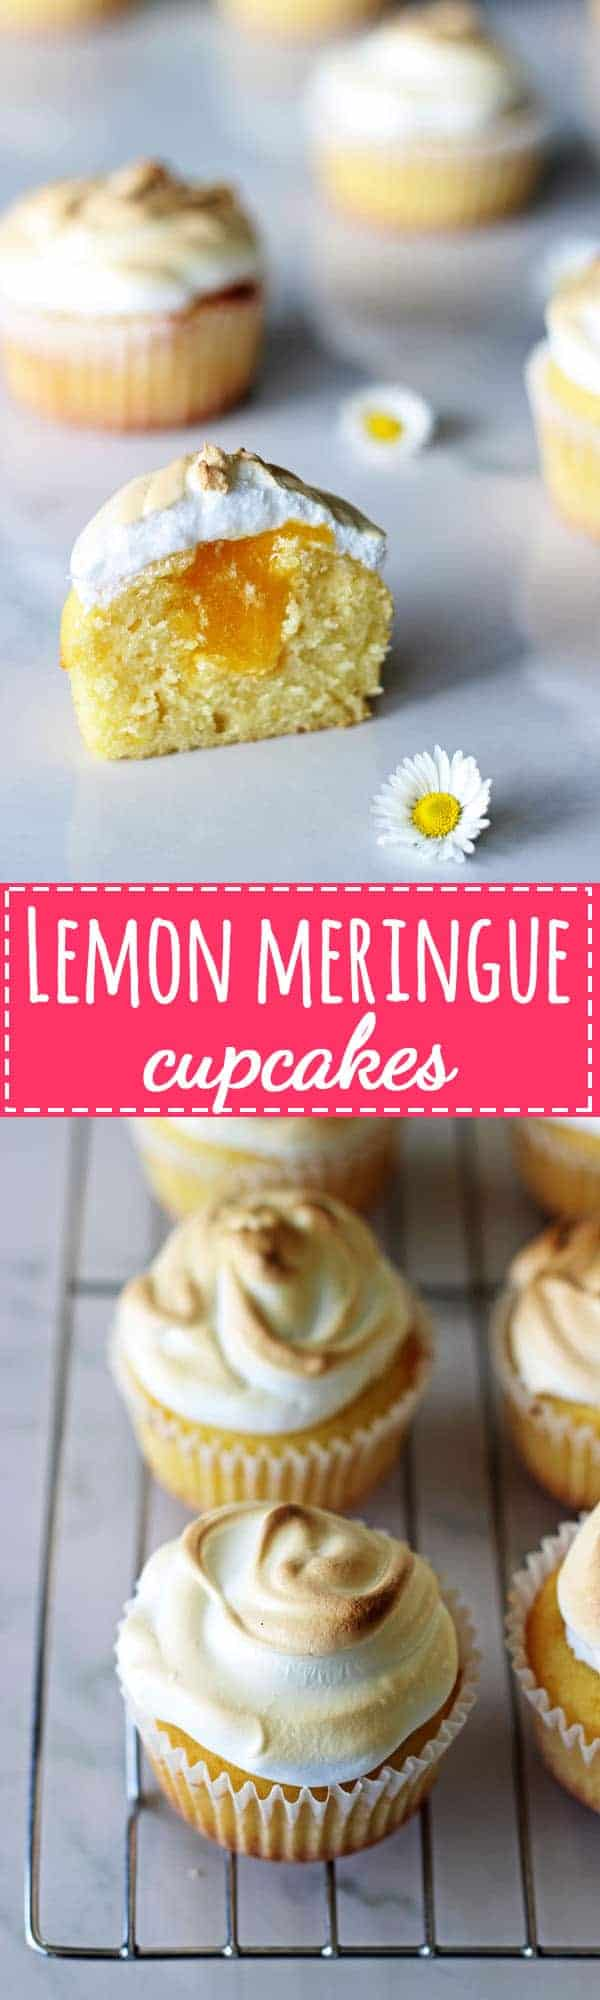 Lemon Meringue Cupcakes - light lemon cupcakes, filled with lemon curd & topped with meringue. They're the perfect spring dessert | thekiwicountrygirl.com